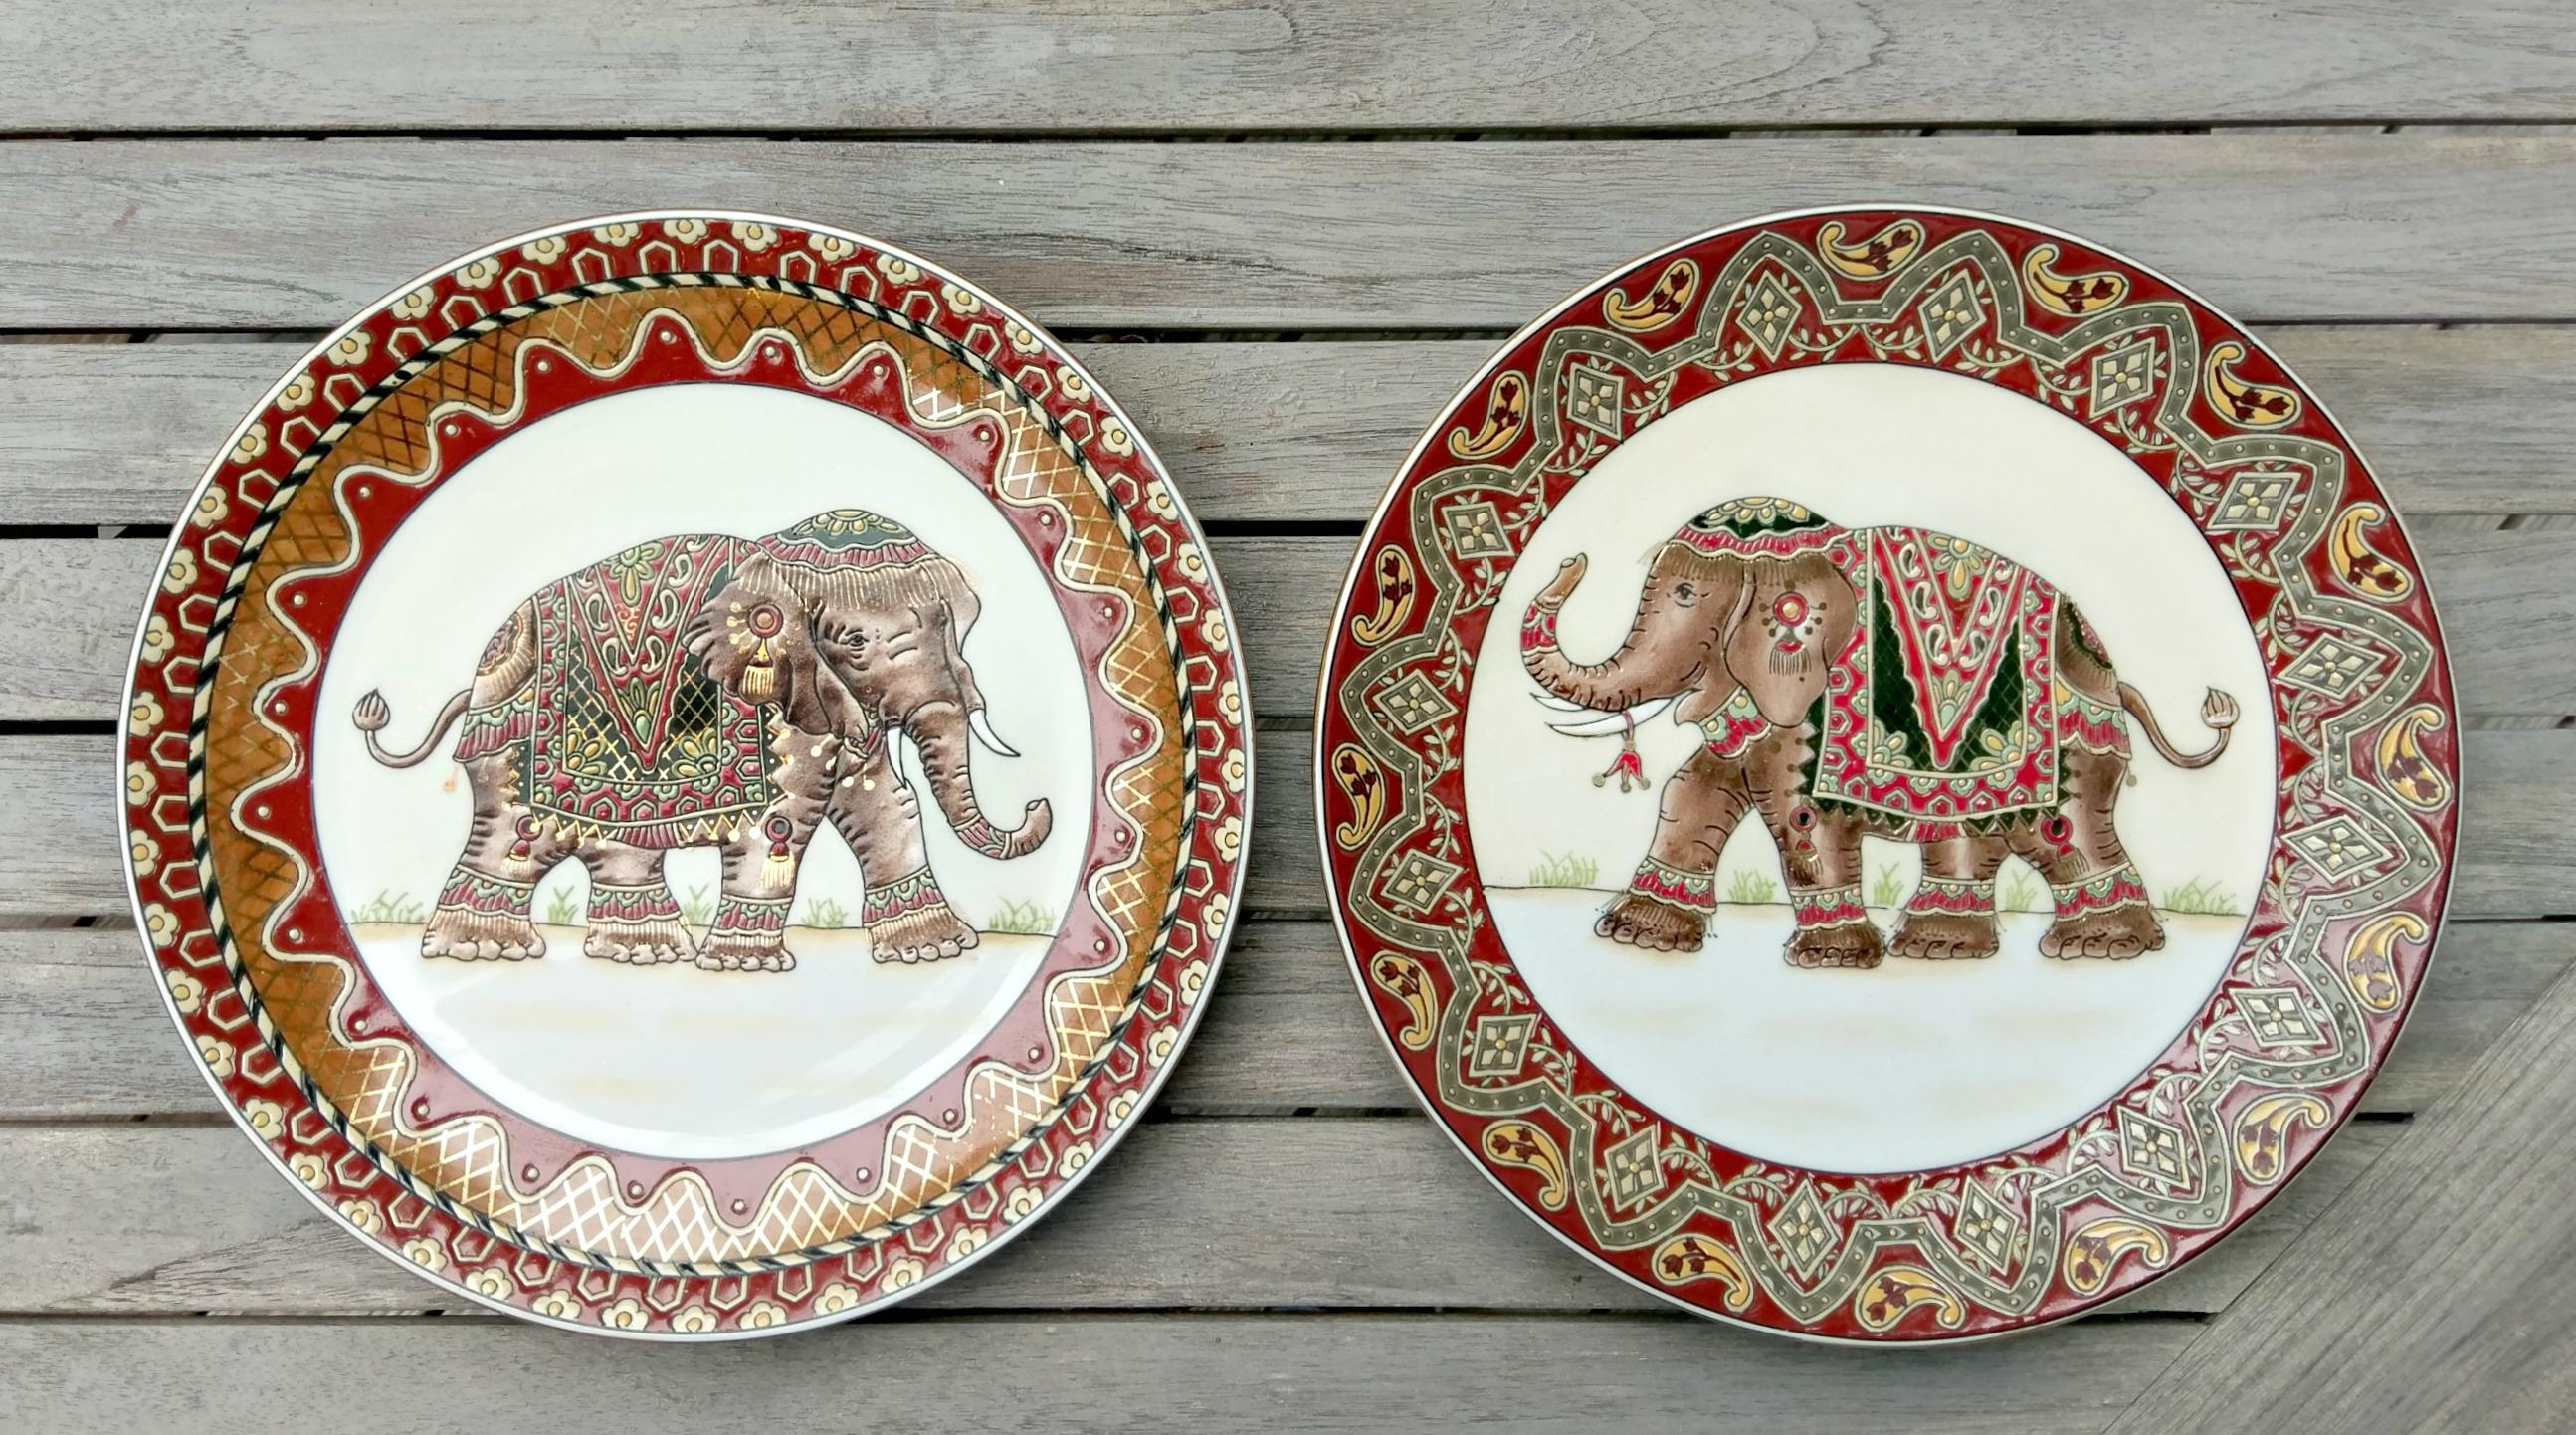 Gold Accented Elephant Plates - a Pair - Image 2 of 10  sc 1 st  Chairish & Gold Accented Elephant Plates - a Pair | Chairish